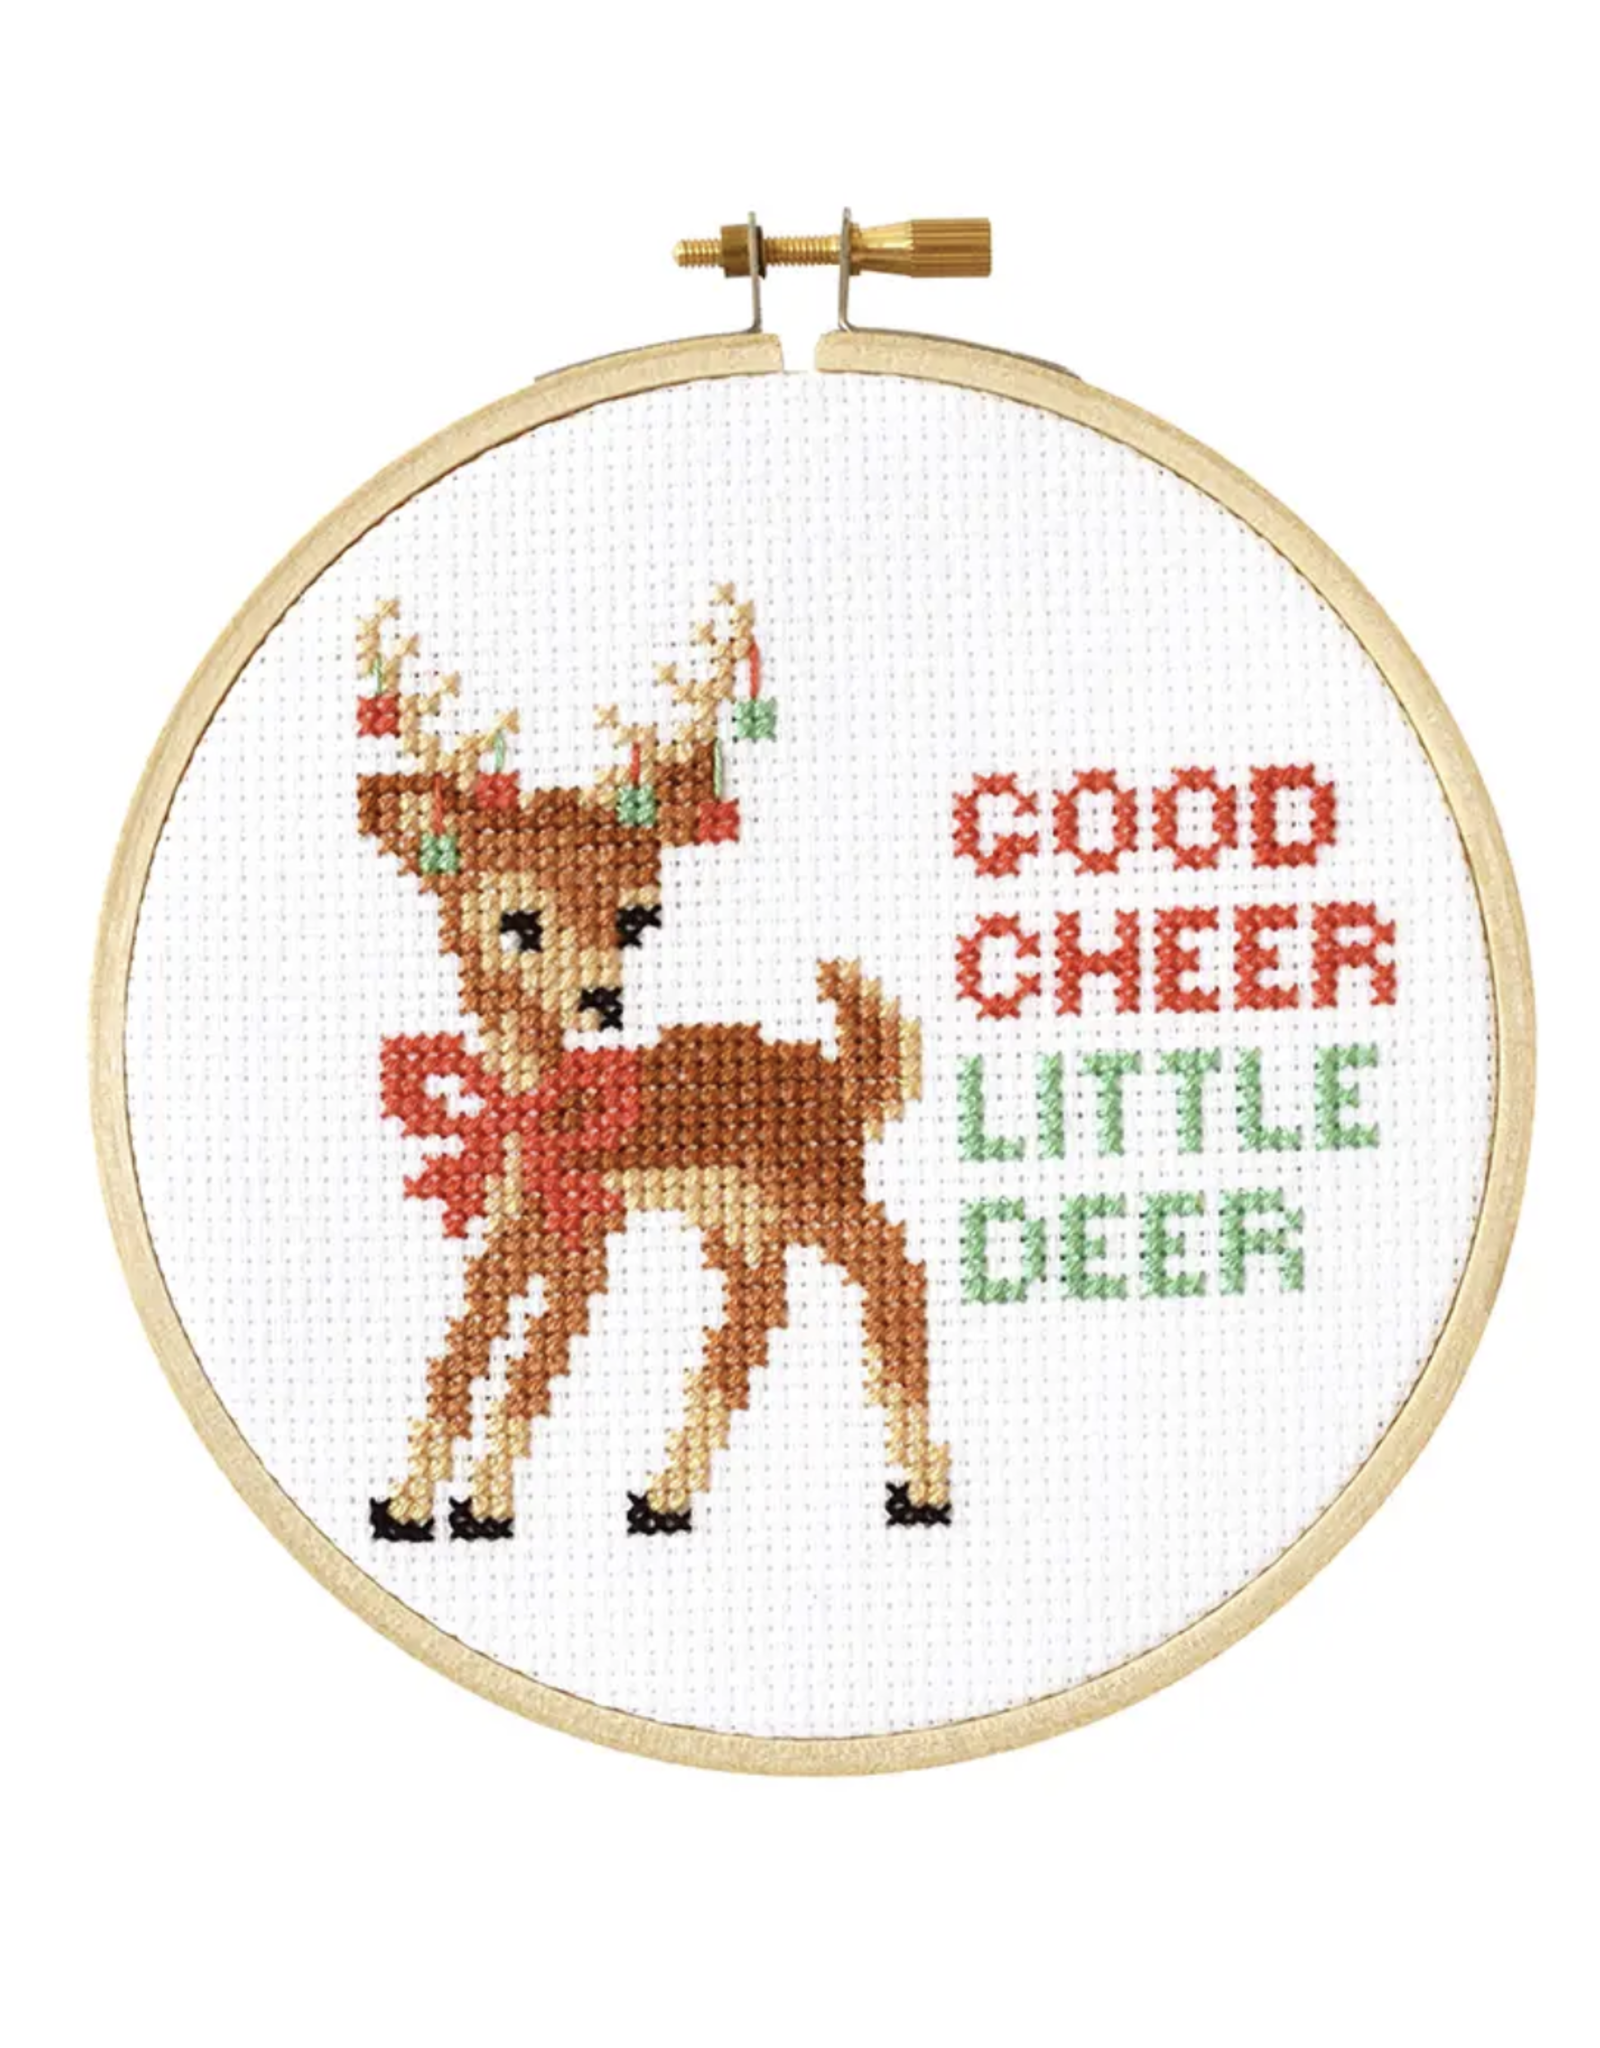 Stranded Stitch Cross Stitch Kit